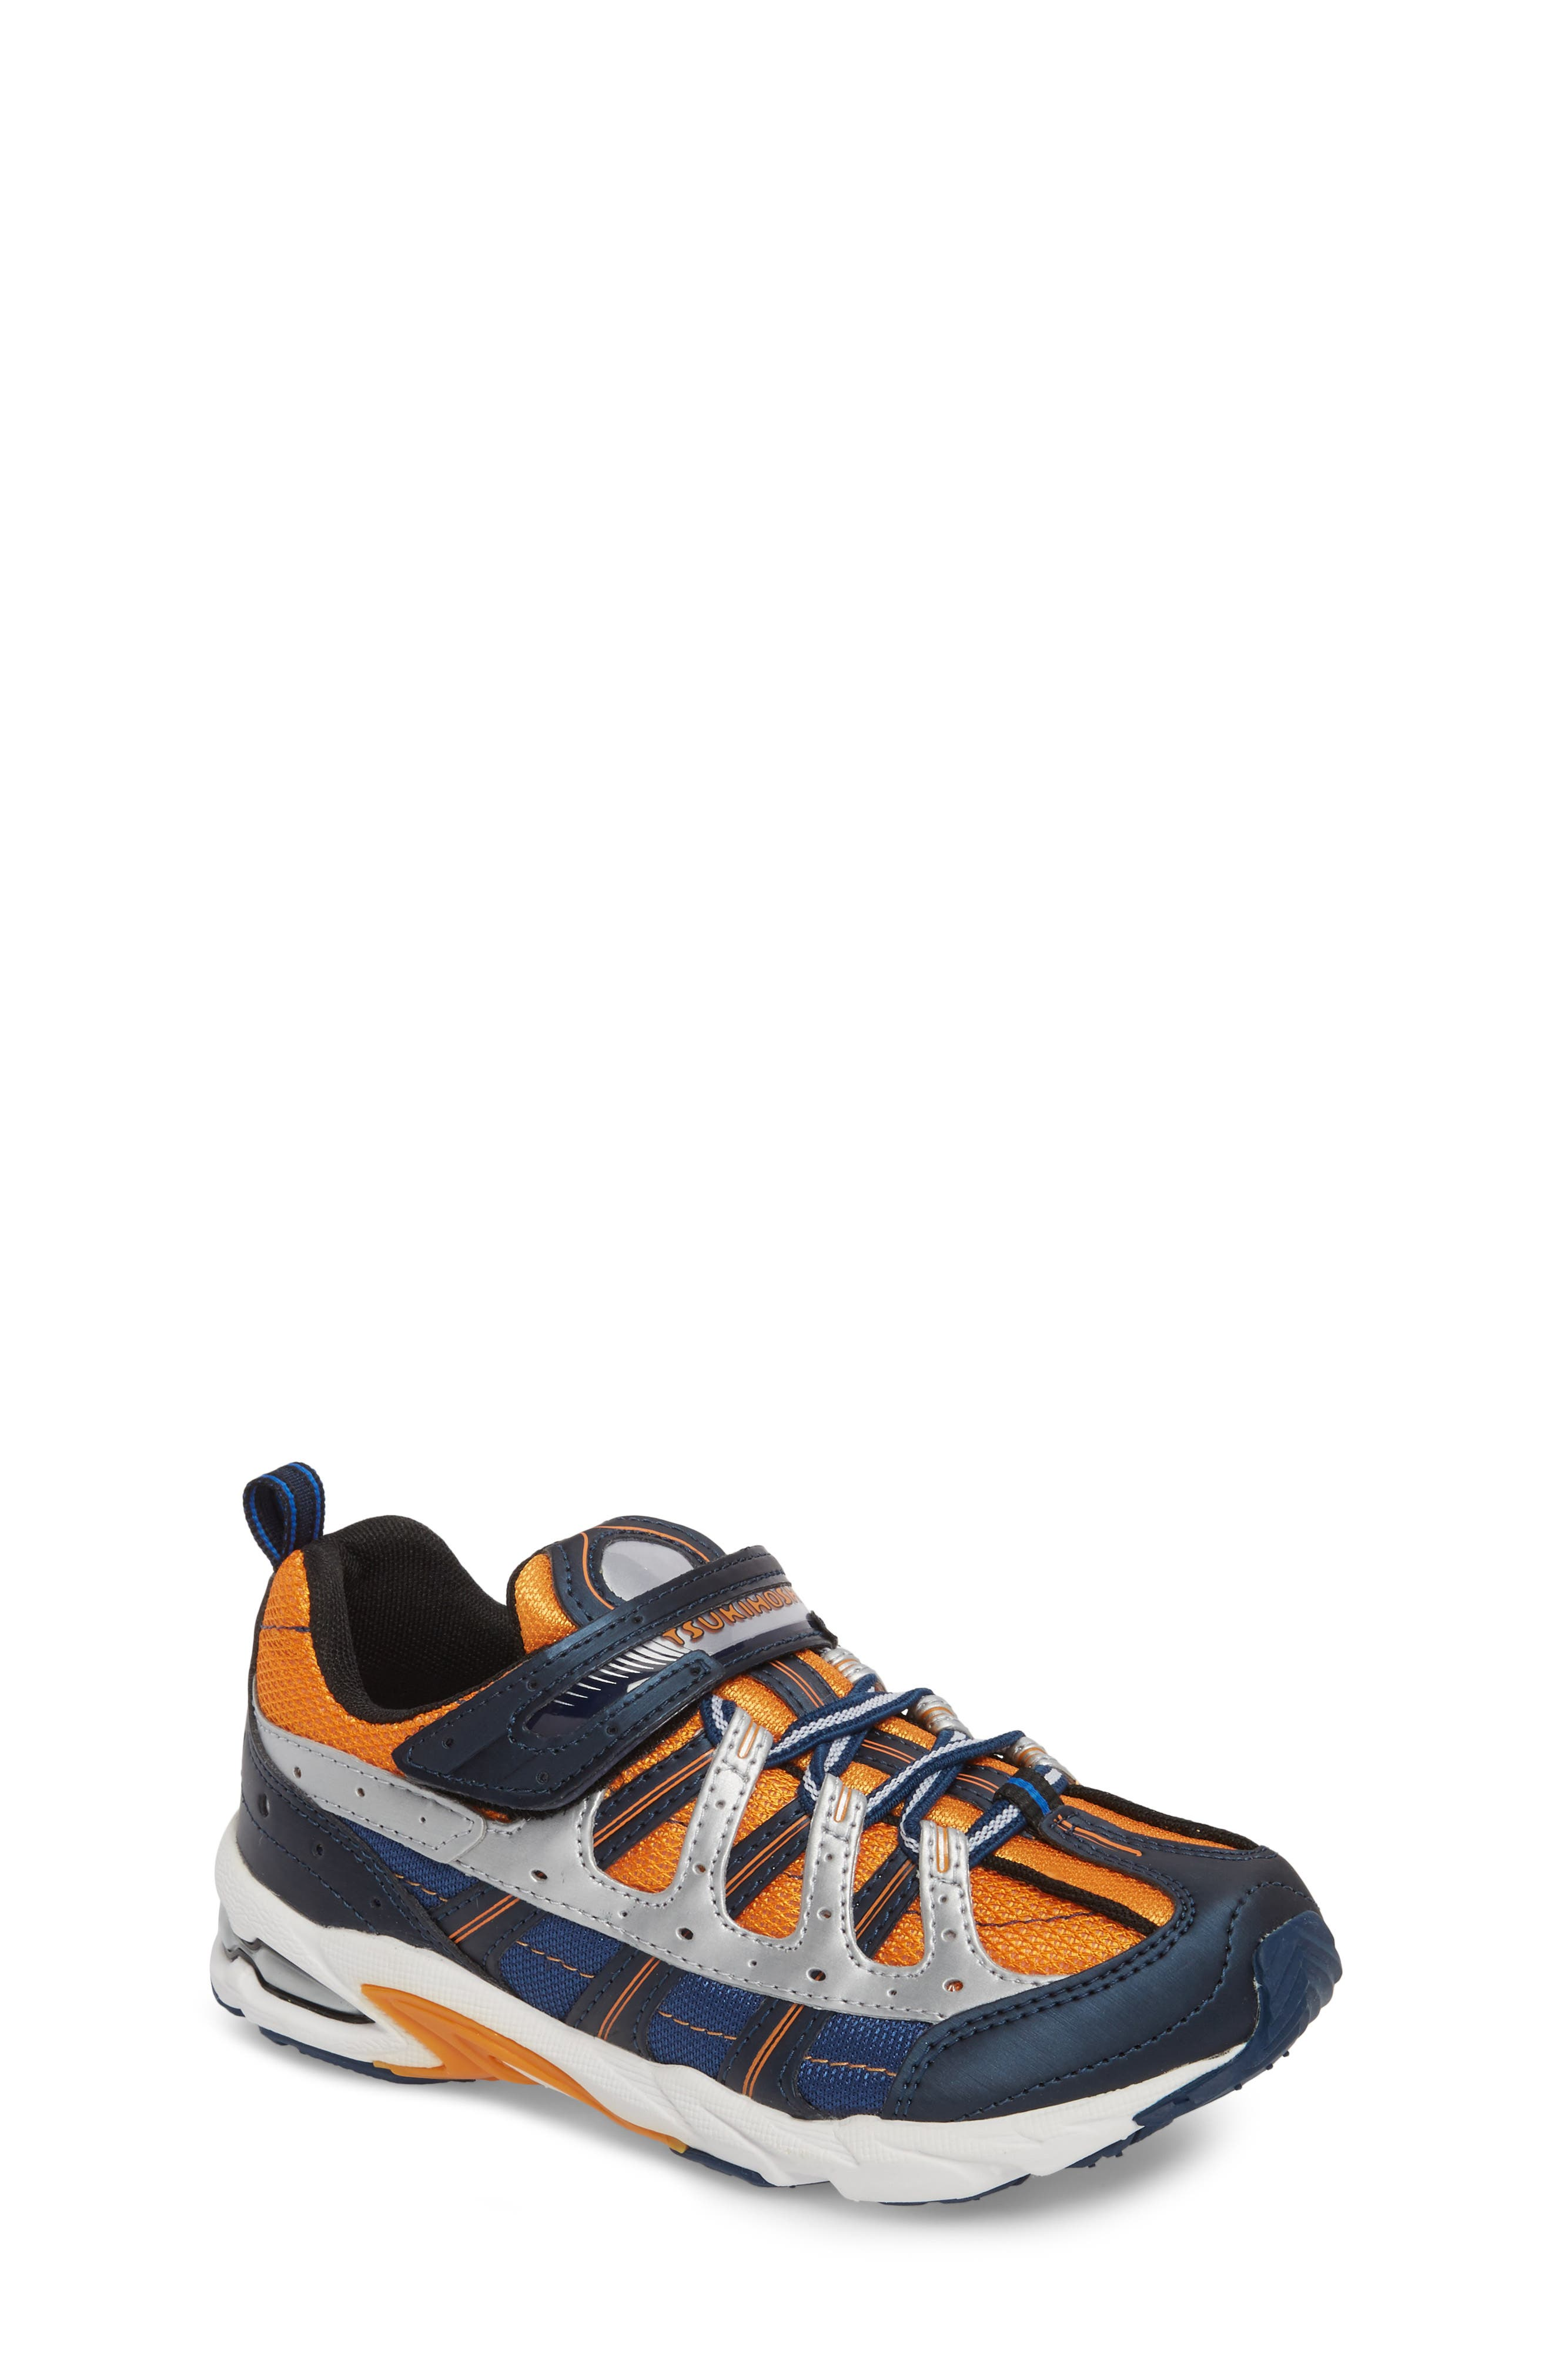 Speed Washable Sneaker,                         Main,                         color, Navy/ Orange